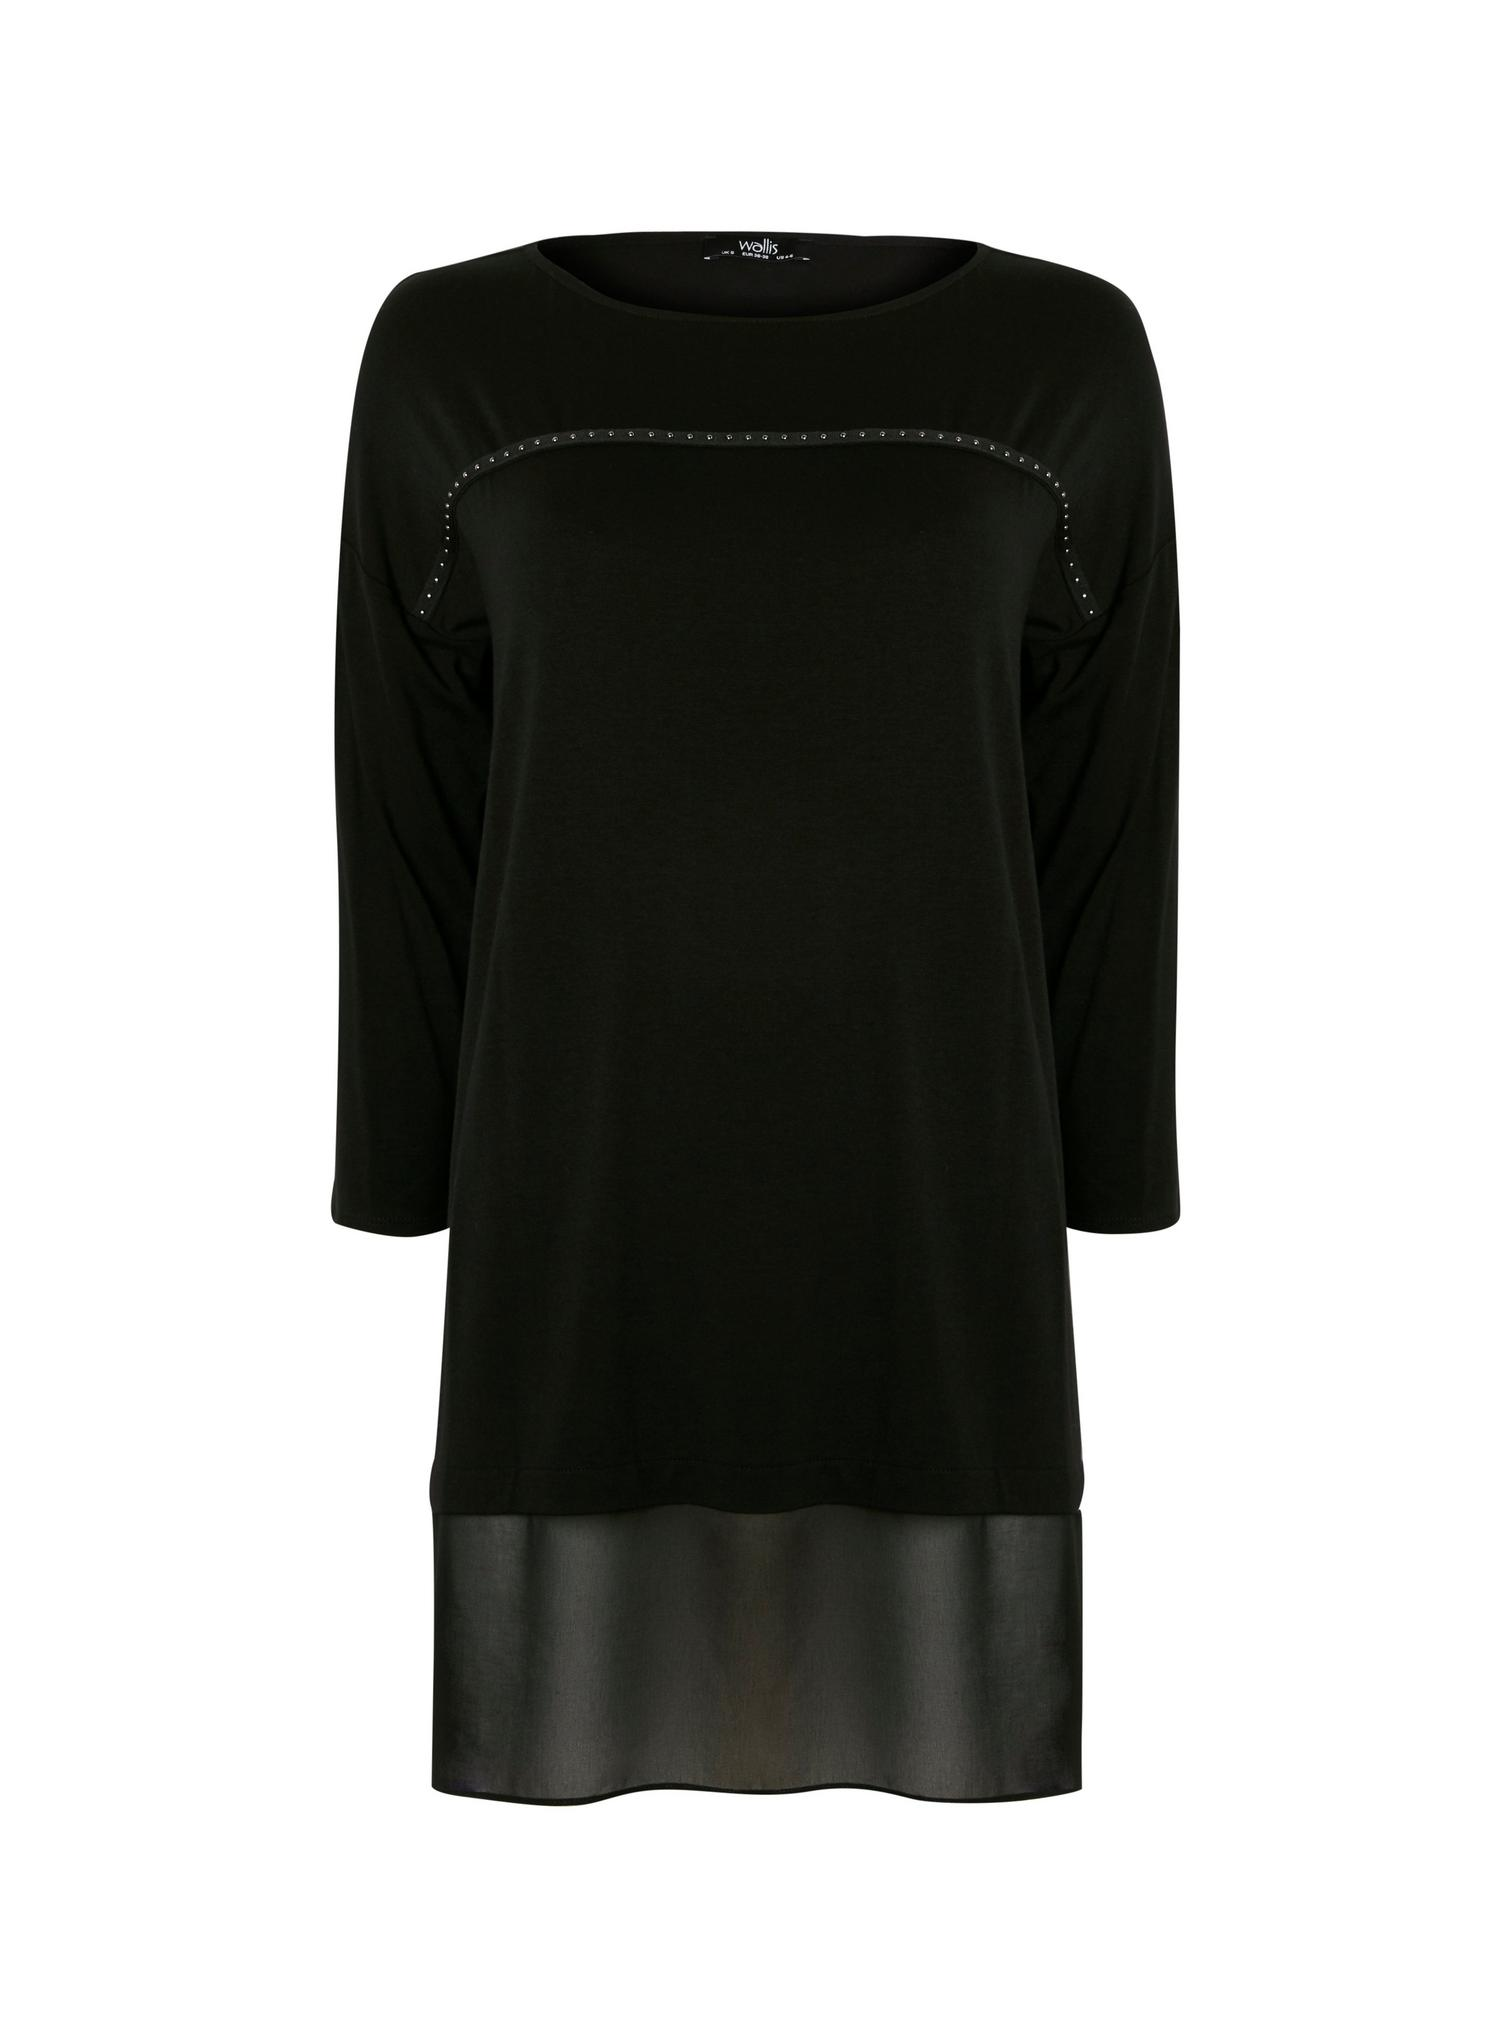 105 Black Studded Chiffon Hem Top image number 4